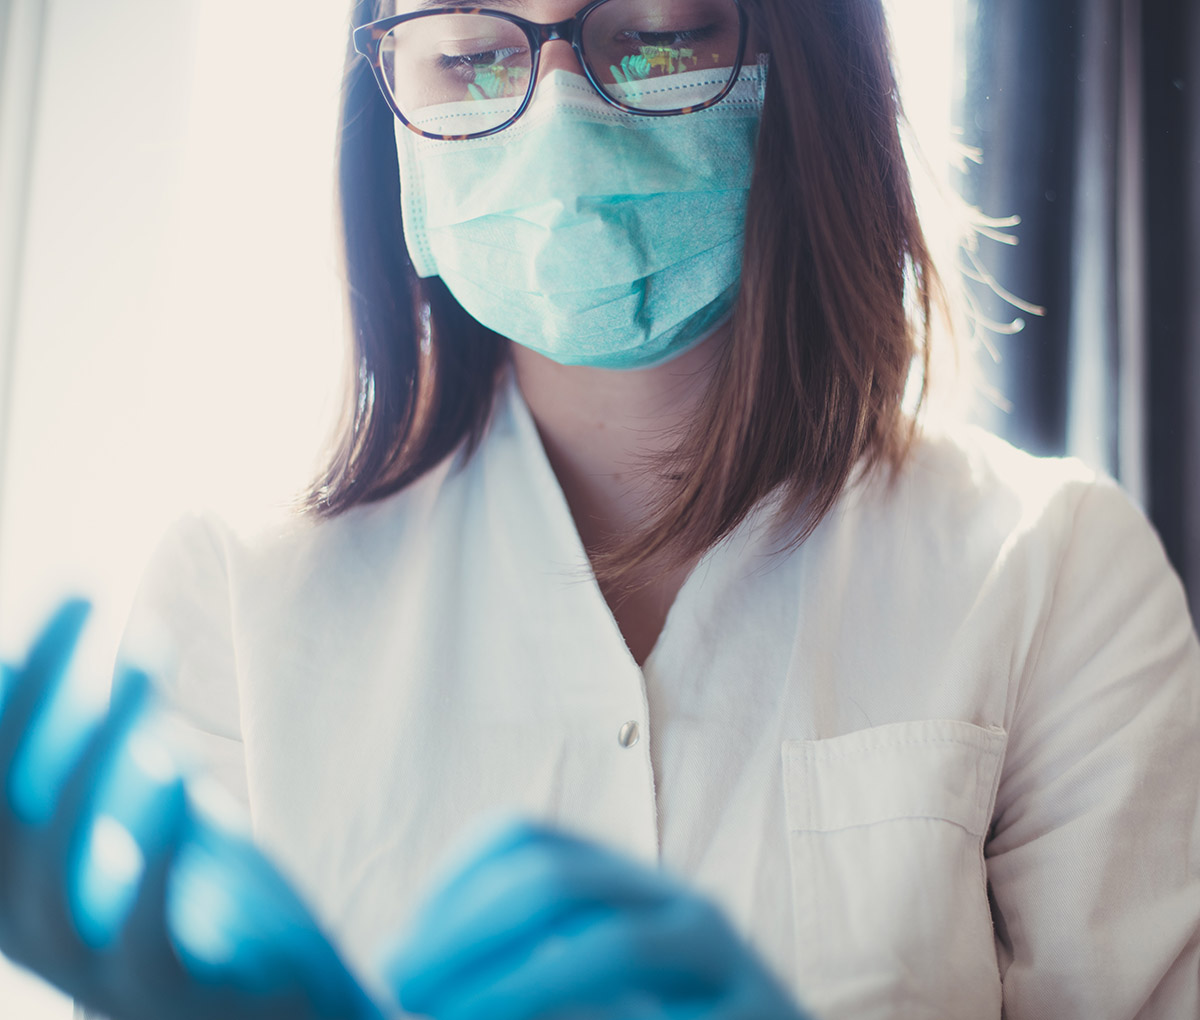 medical-nurse-putting-on-blue-sterilized-surgical-gloves-picture-id1223524759